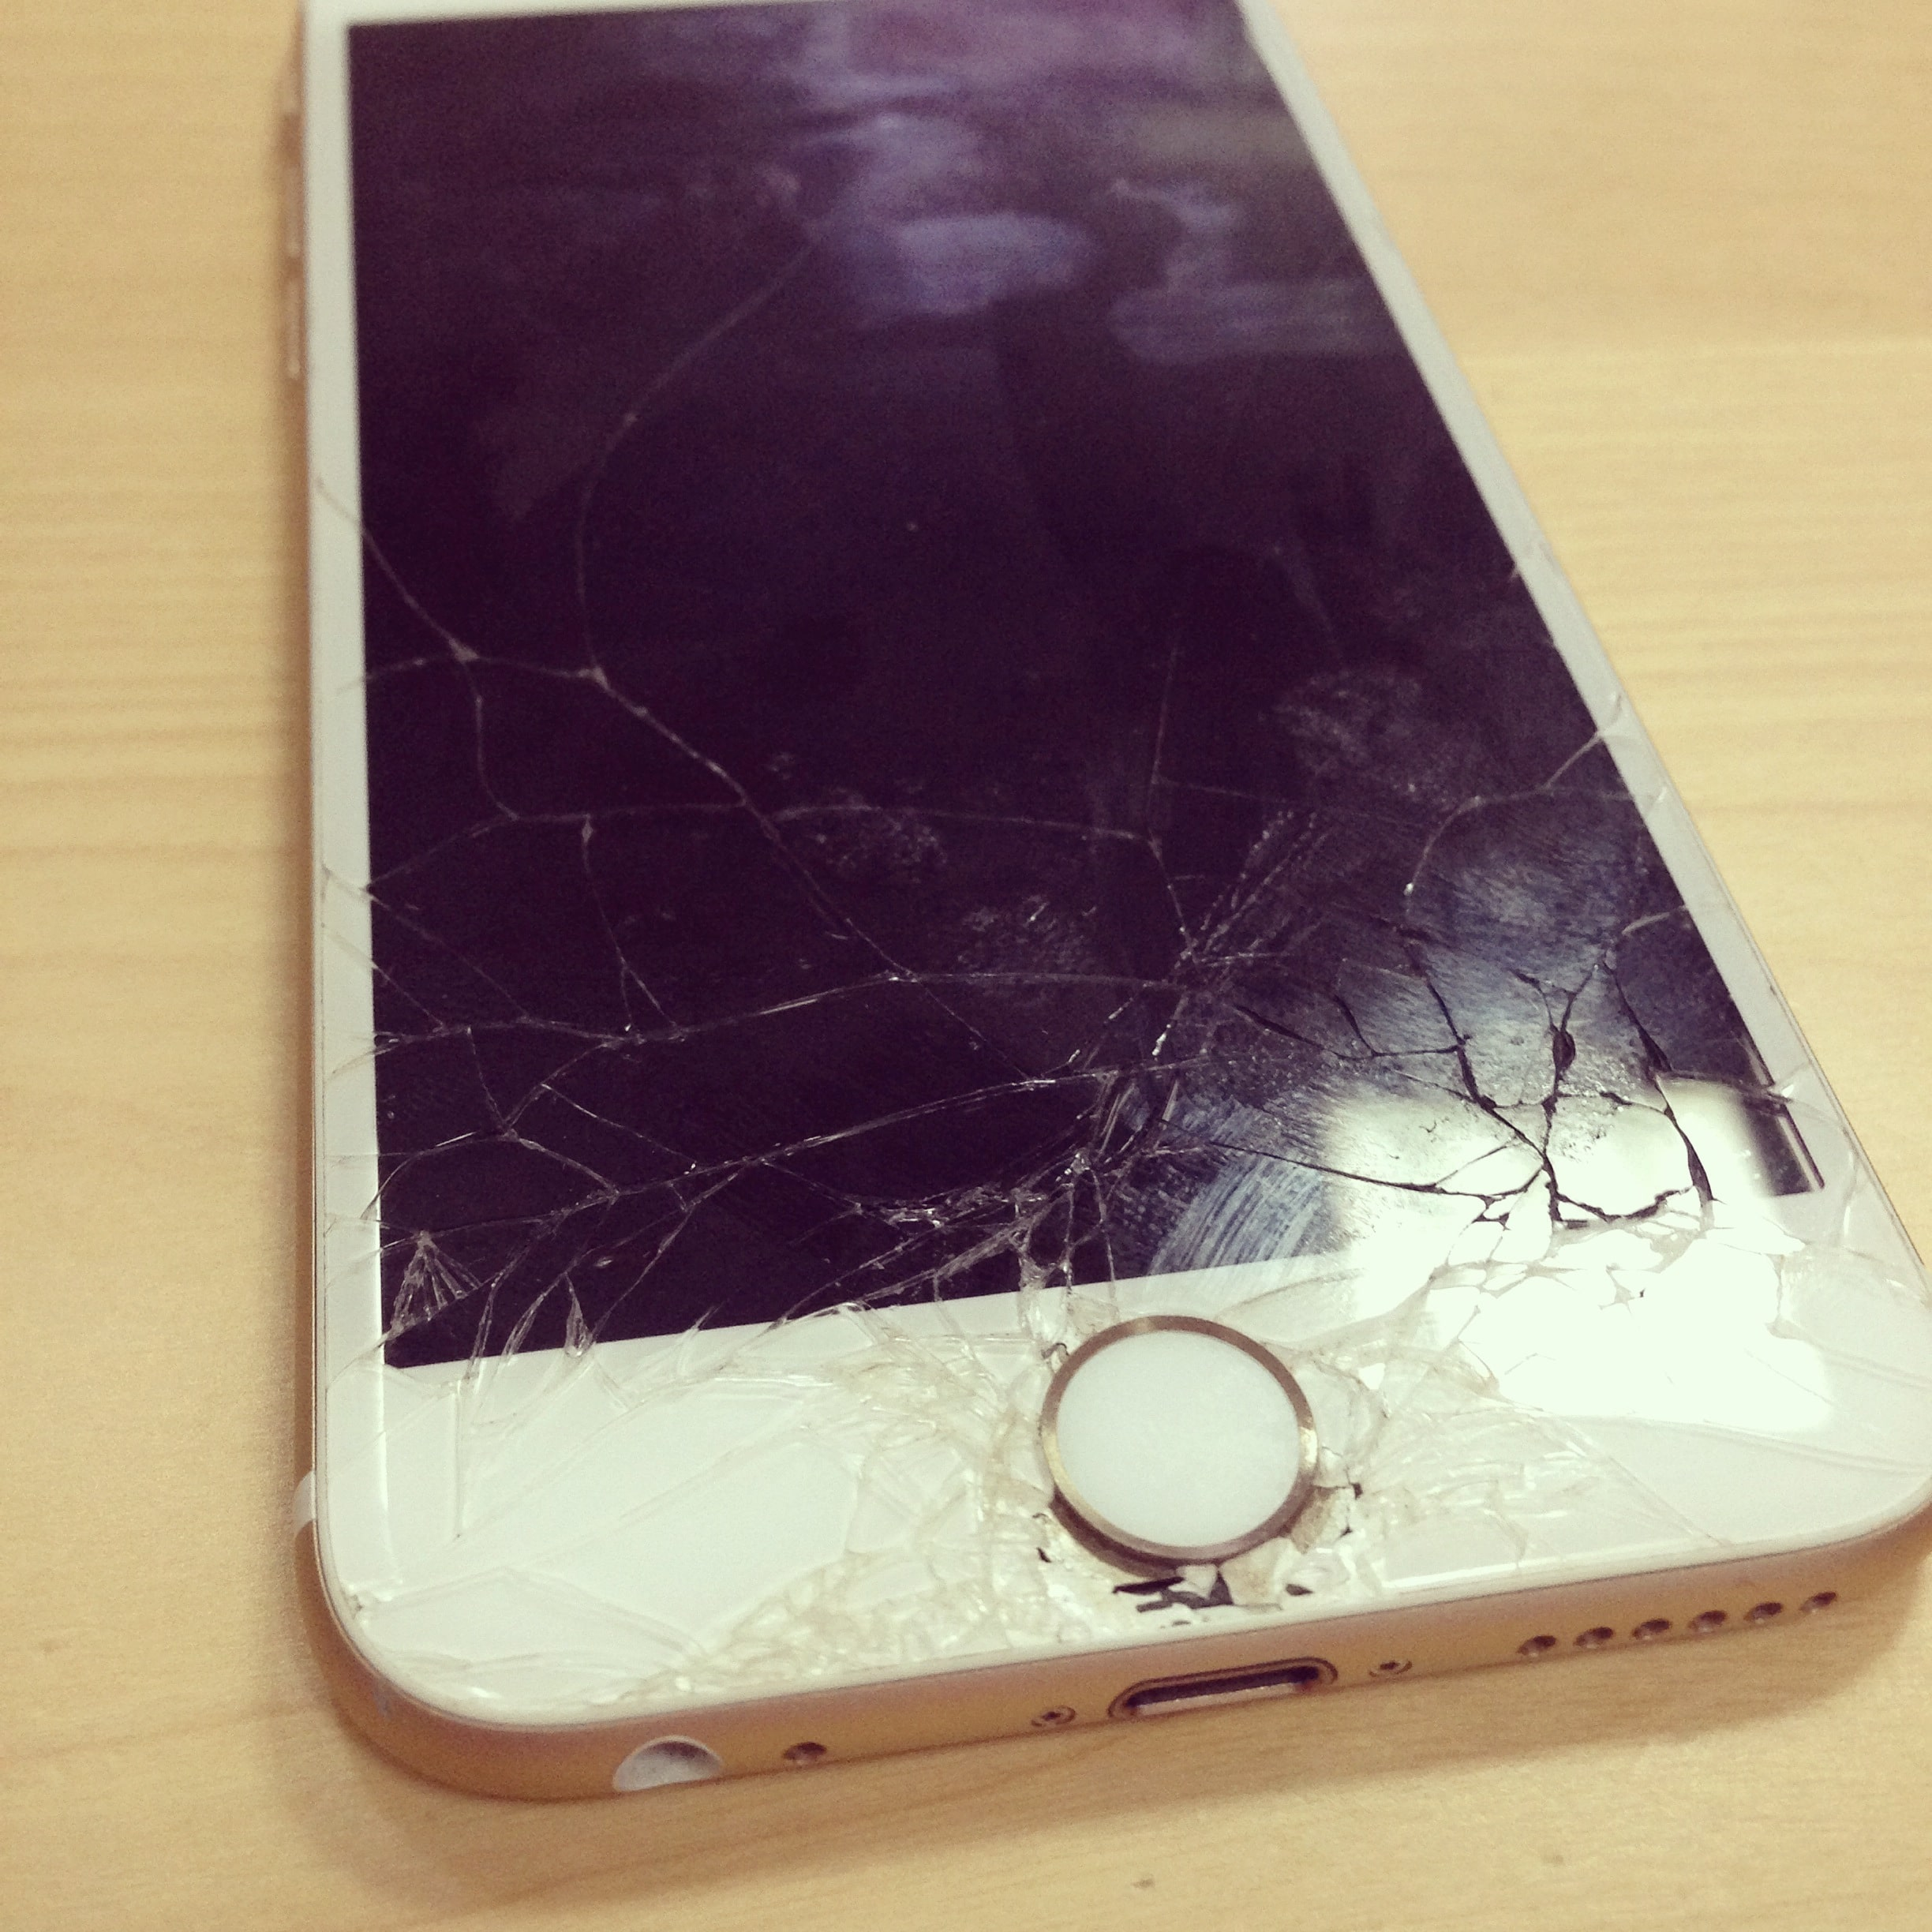 Cracked iPhone Screen in Detroit?